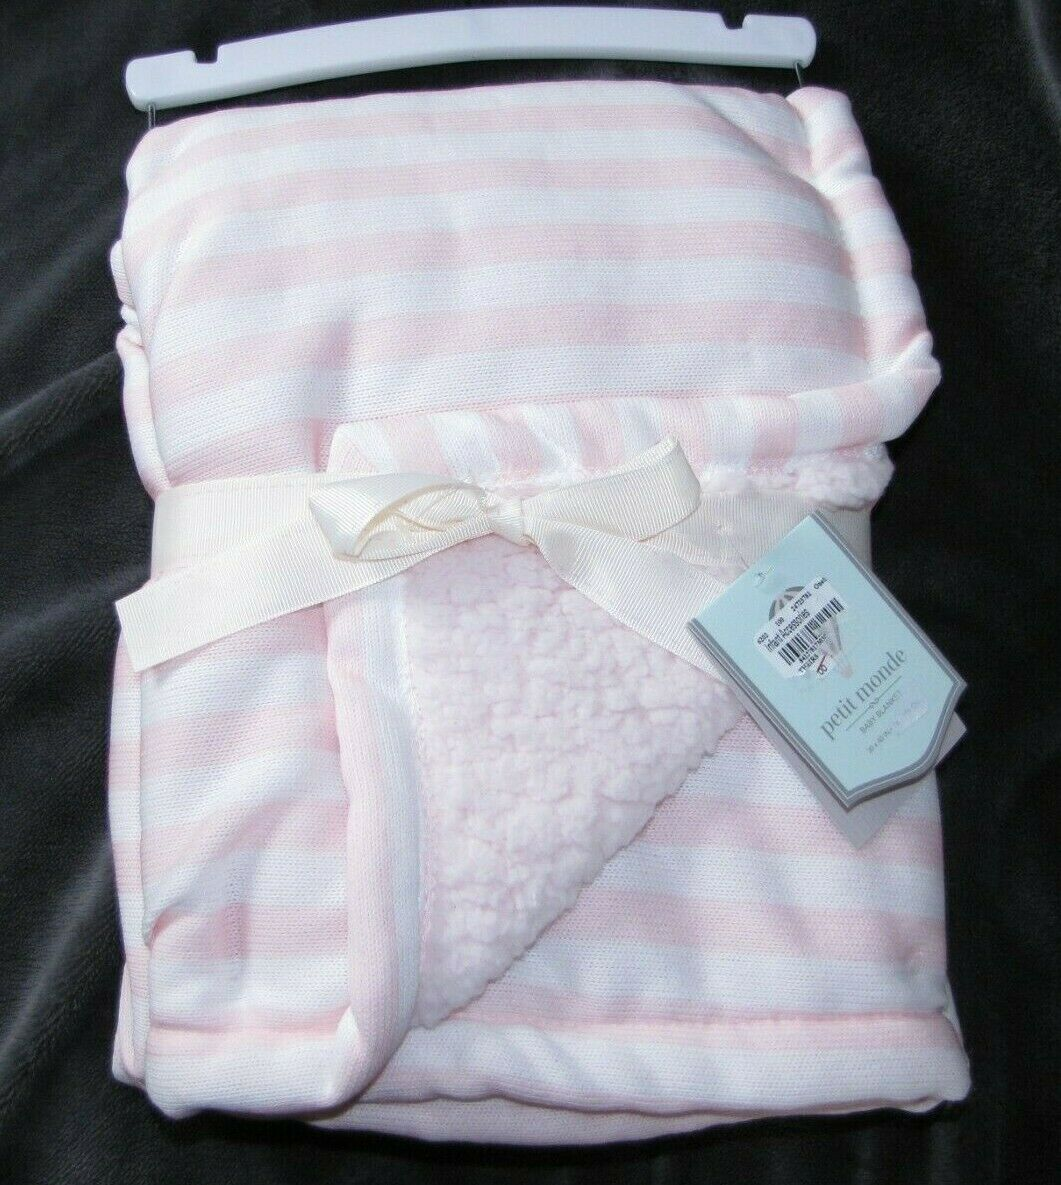 NWT PETIT MONDE PINK WHITE STRIPE KNIT SWEATER/SHERPA PLUSH BABY BLANKET NEW - $49.99